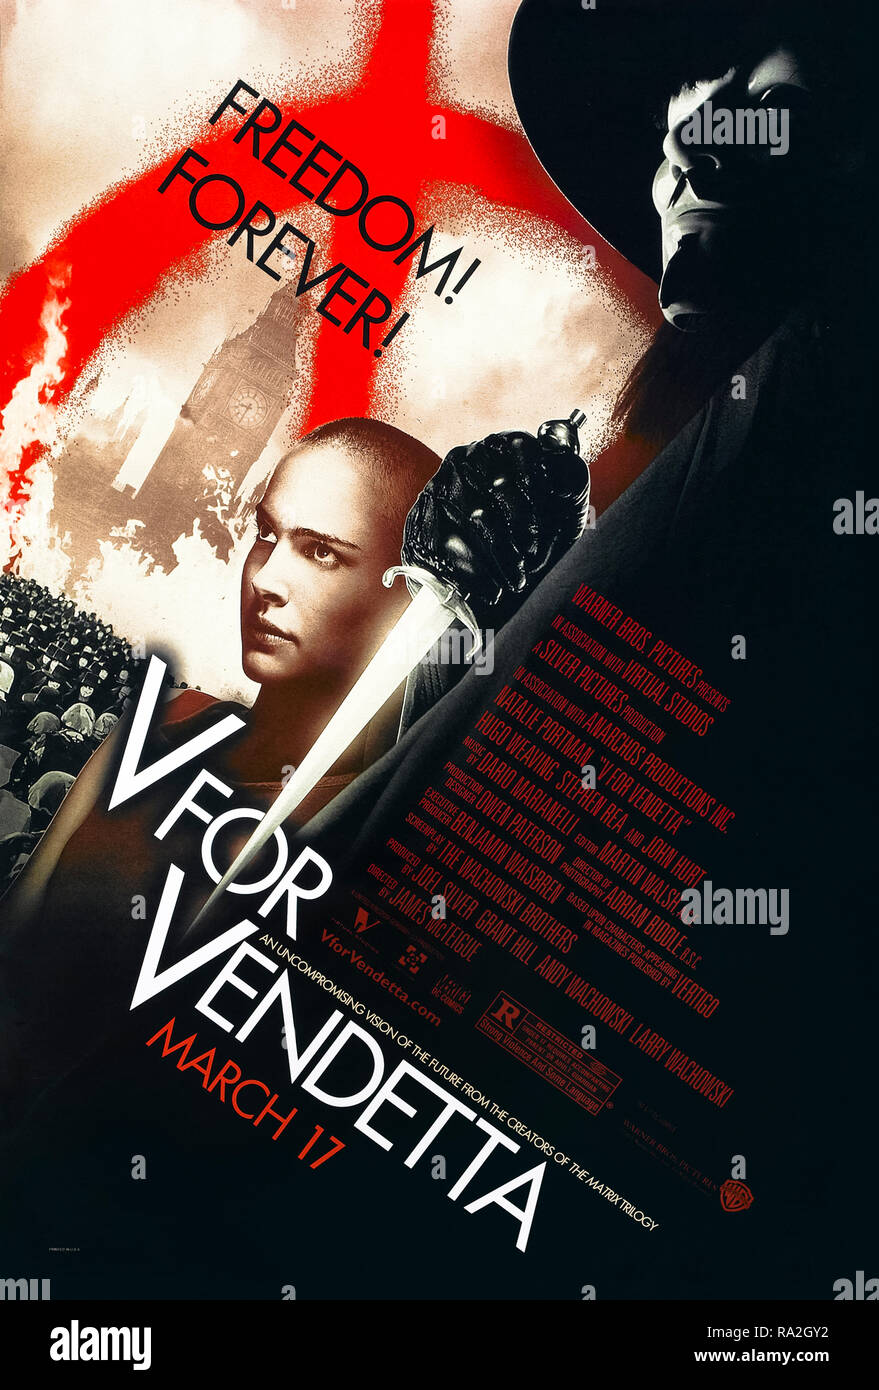 V for Vendetta (2005) directed by James McTeigue and starring Hugo Weaving, Natalie Portman, Rupert Graves and John Hurt. The Wachowski Brothers big screen adaptation of Alan Moore and David Lloyd's dystopian political comic books about an alternative future where a neo-fascist government rules over the United Kingdom. - Stock Image